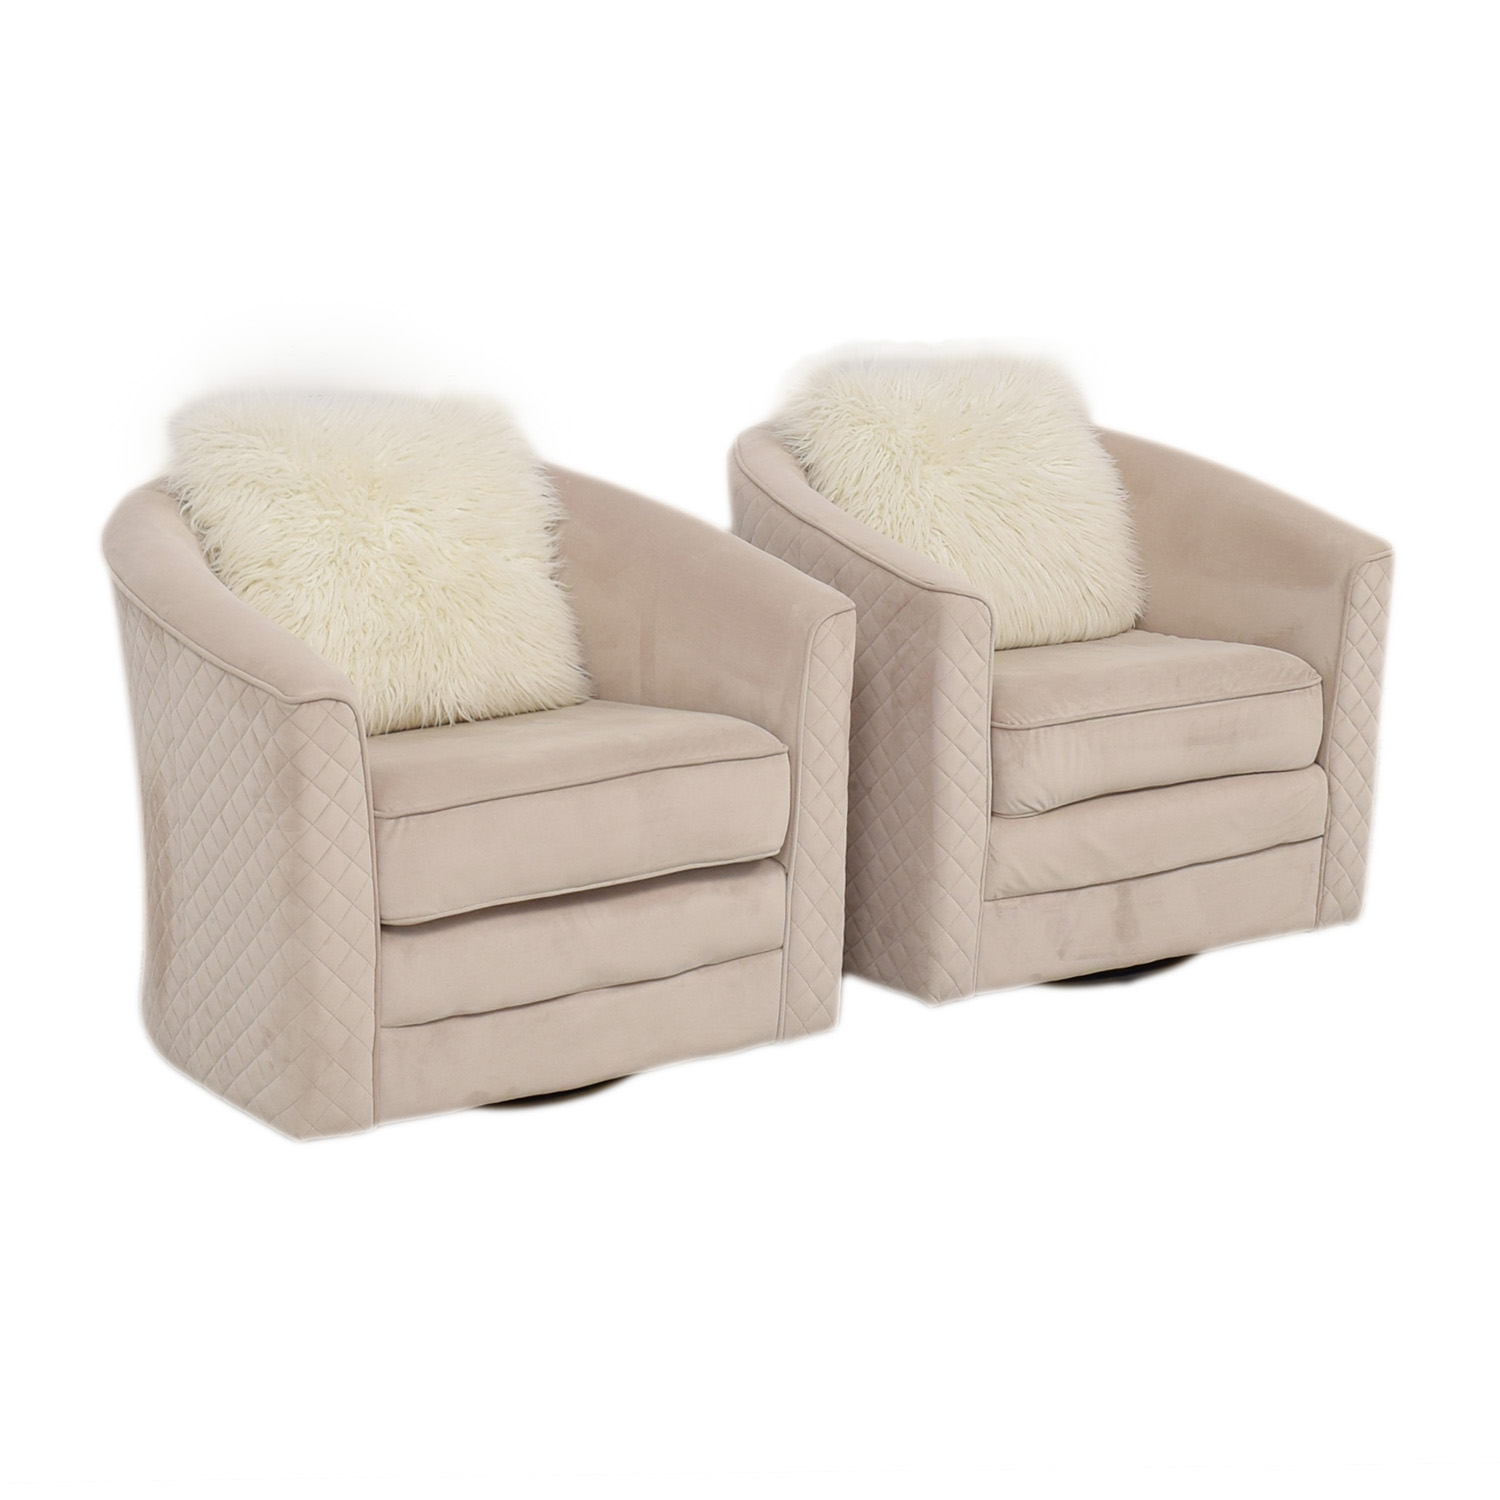 Strange 86 Off Wayfair Wayfair Cream Color Swivel Chairs Chairs Caraccident5 Cool Chair Designs And Ideas Caraccident5Info